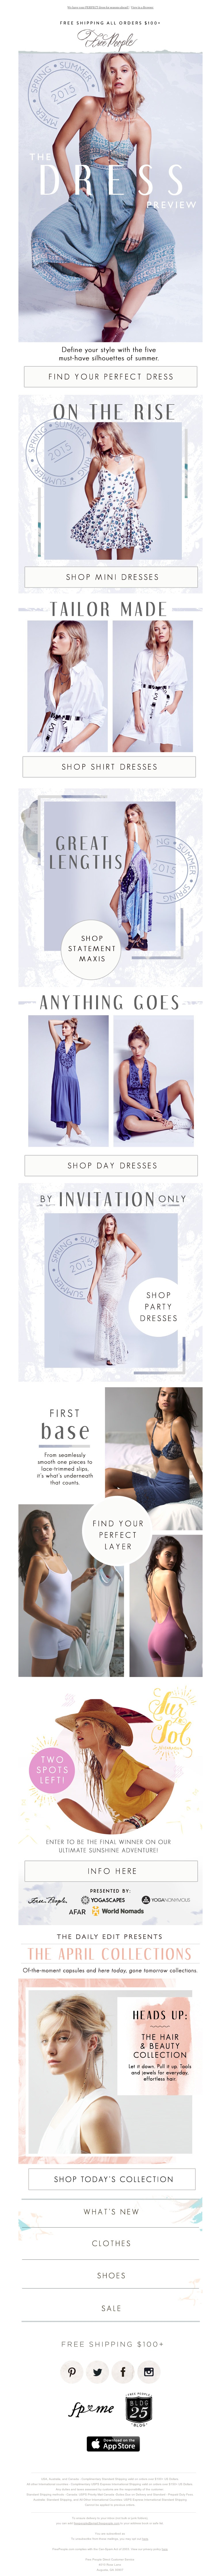 Free People - Introducing: Your Perfect Summer Dress